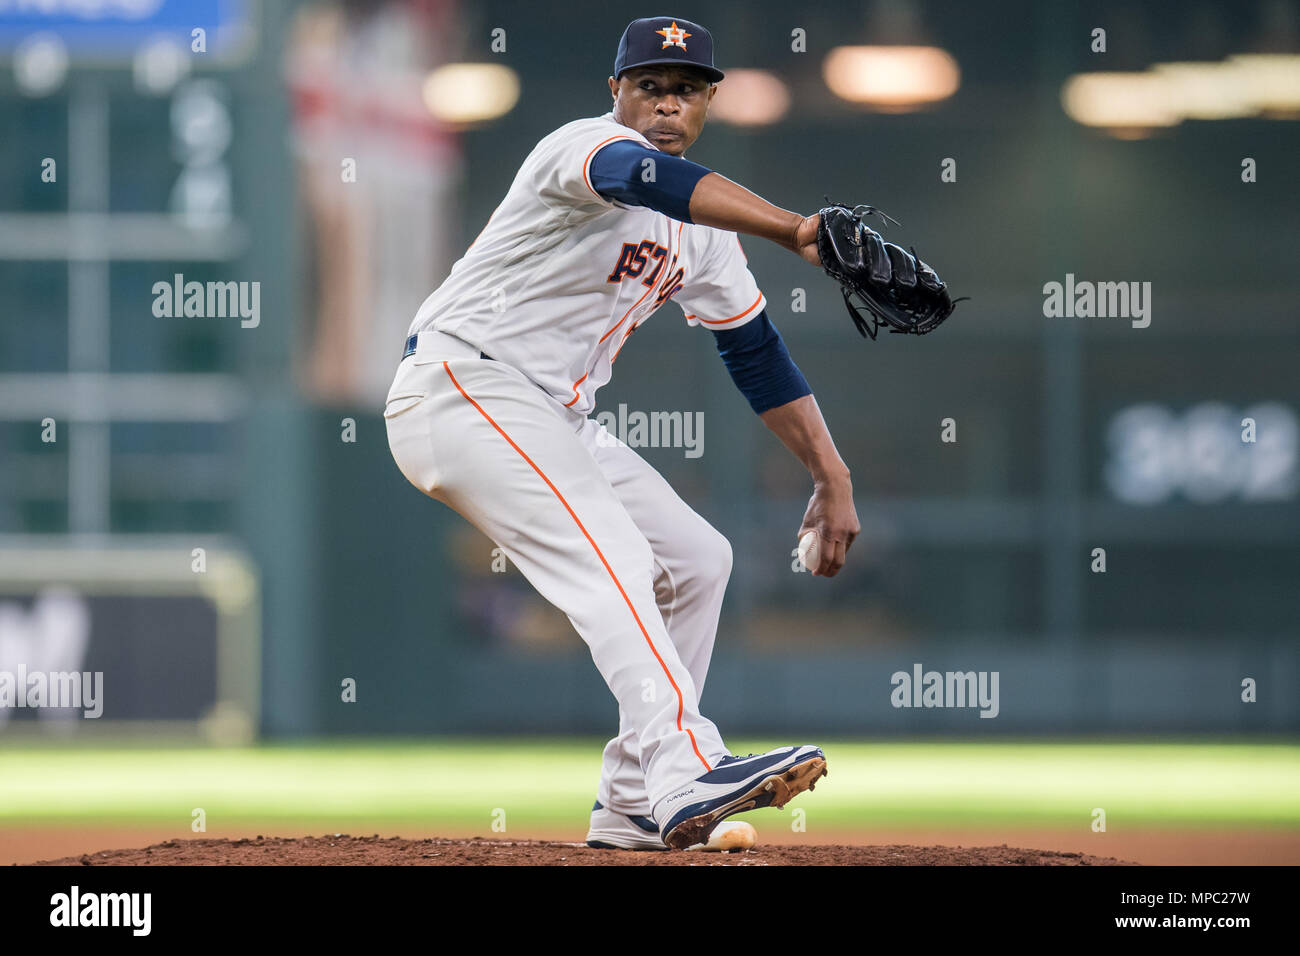 Houston, TX, USA. 19th May, 2018. Houston Astros relief pitcher Tony Sipp (29) during a Major League Baseball game between the Houston Astros and the Cleveland Indians at Minute Maid Park in Houston, TX. Cleveland won the game 5 to 4.Trask Smith/CSM/Alamy Live News - Stock Image